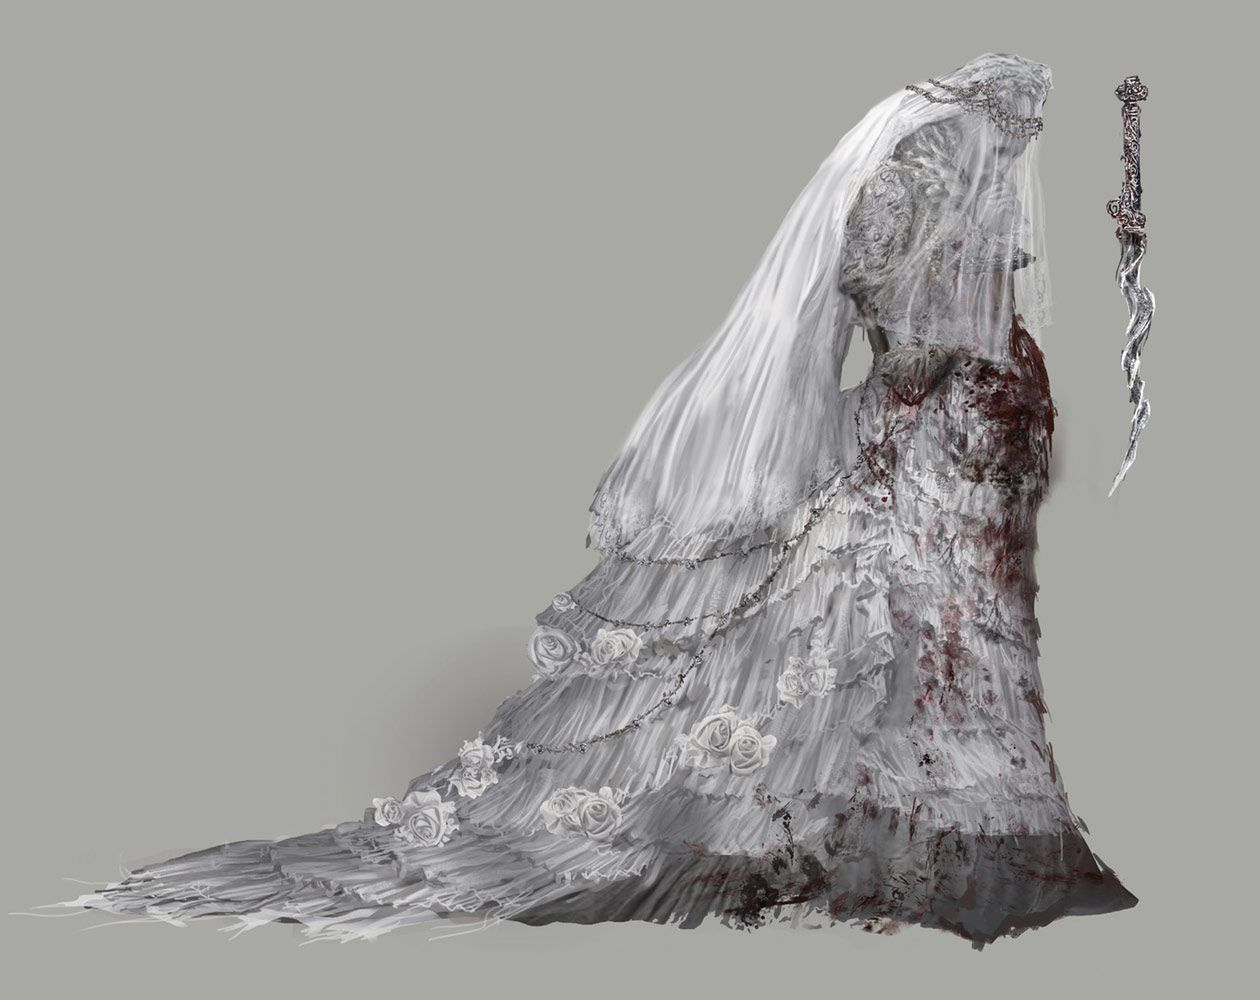 svg black and white stock Pthumerian queen from creature. Bloodborne drawing yharnam